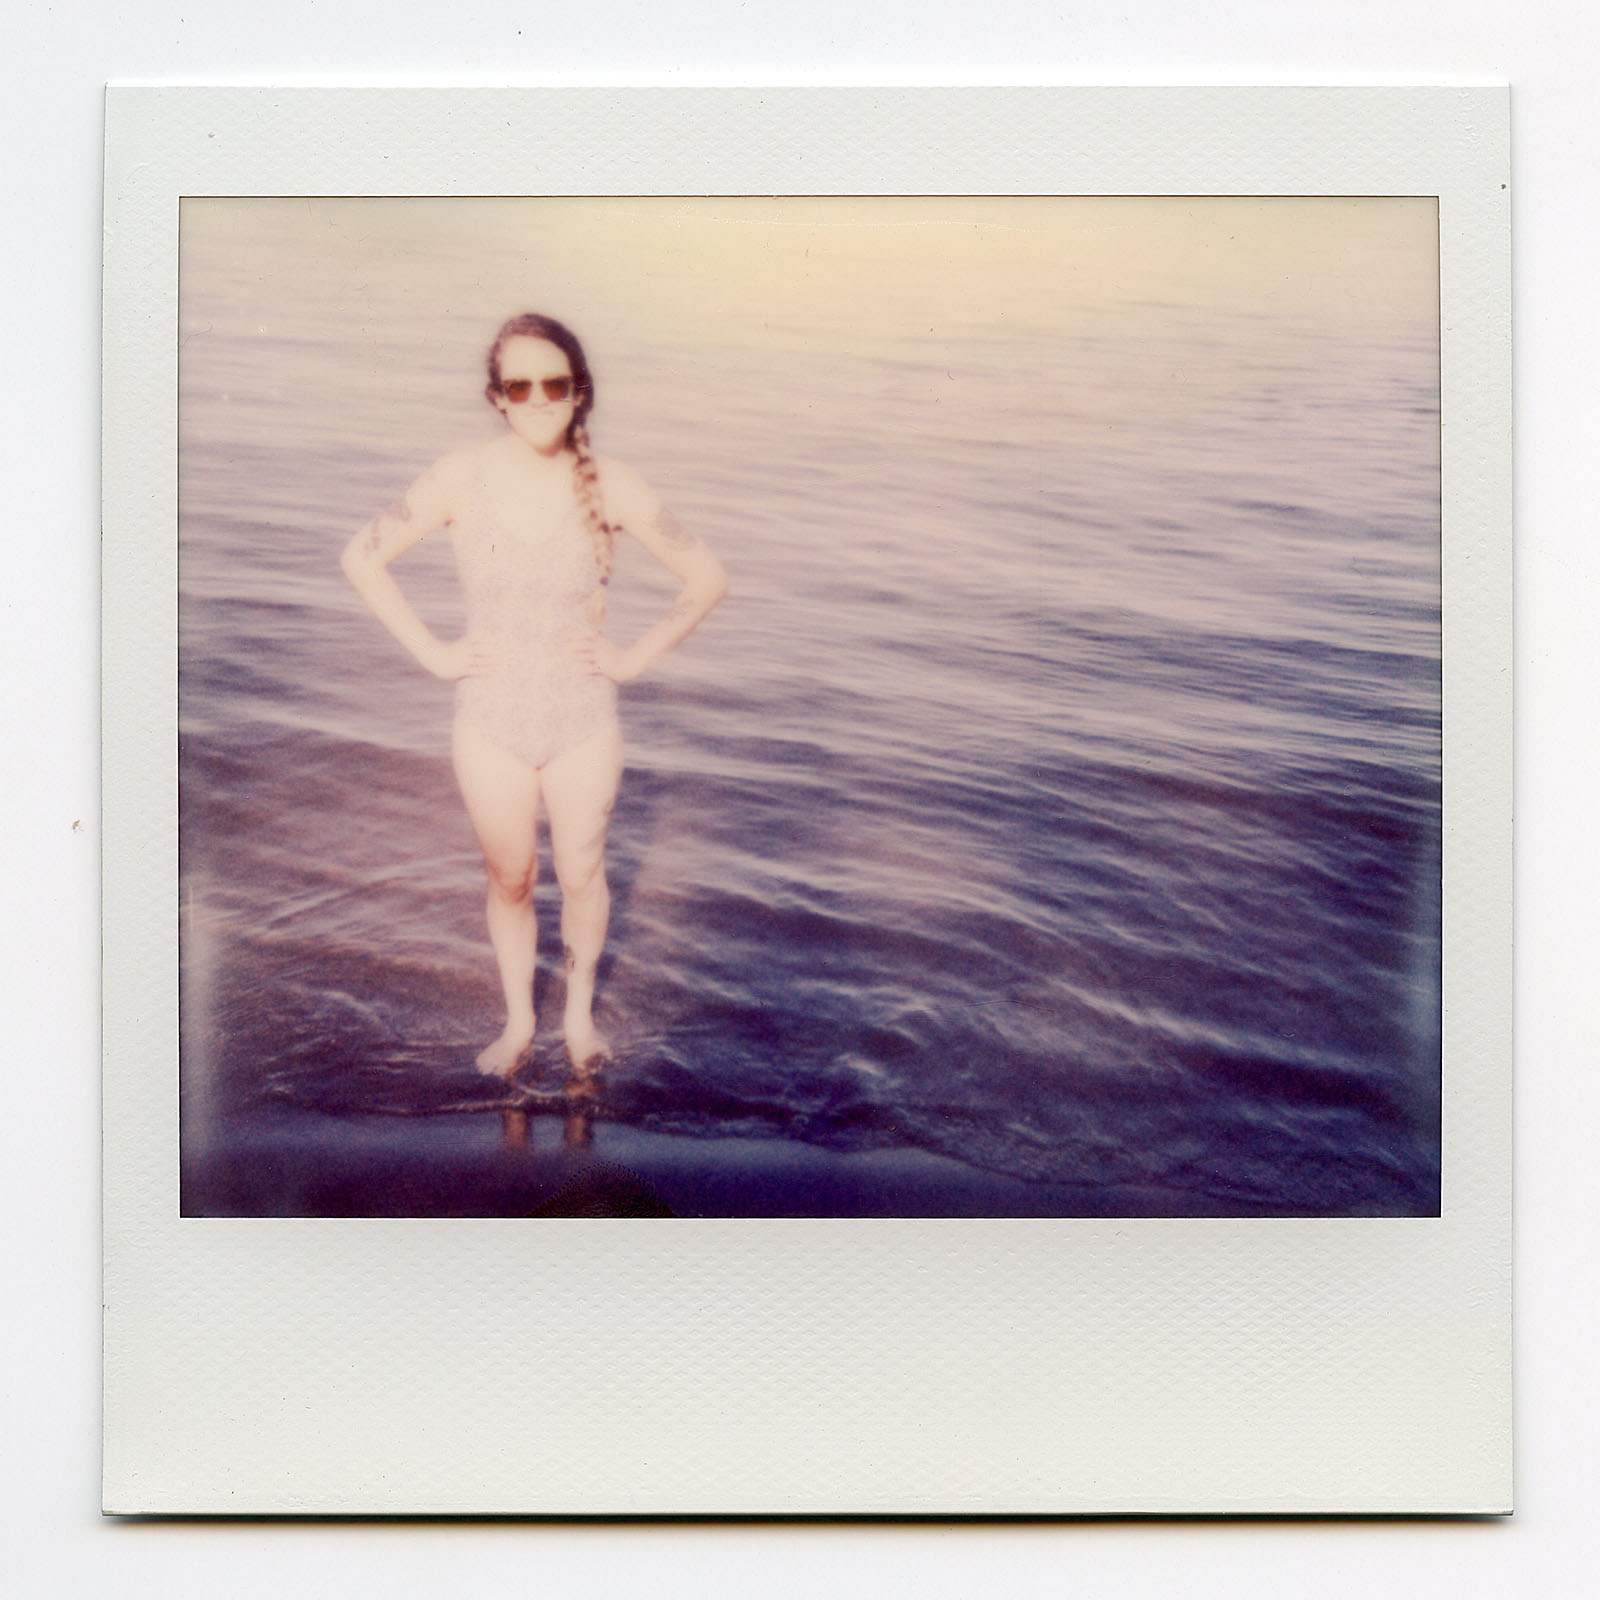 Polaroid of Sallie Ford swimming on Sauvie Island in Portland, OR